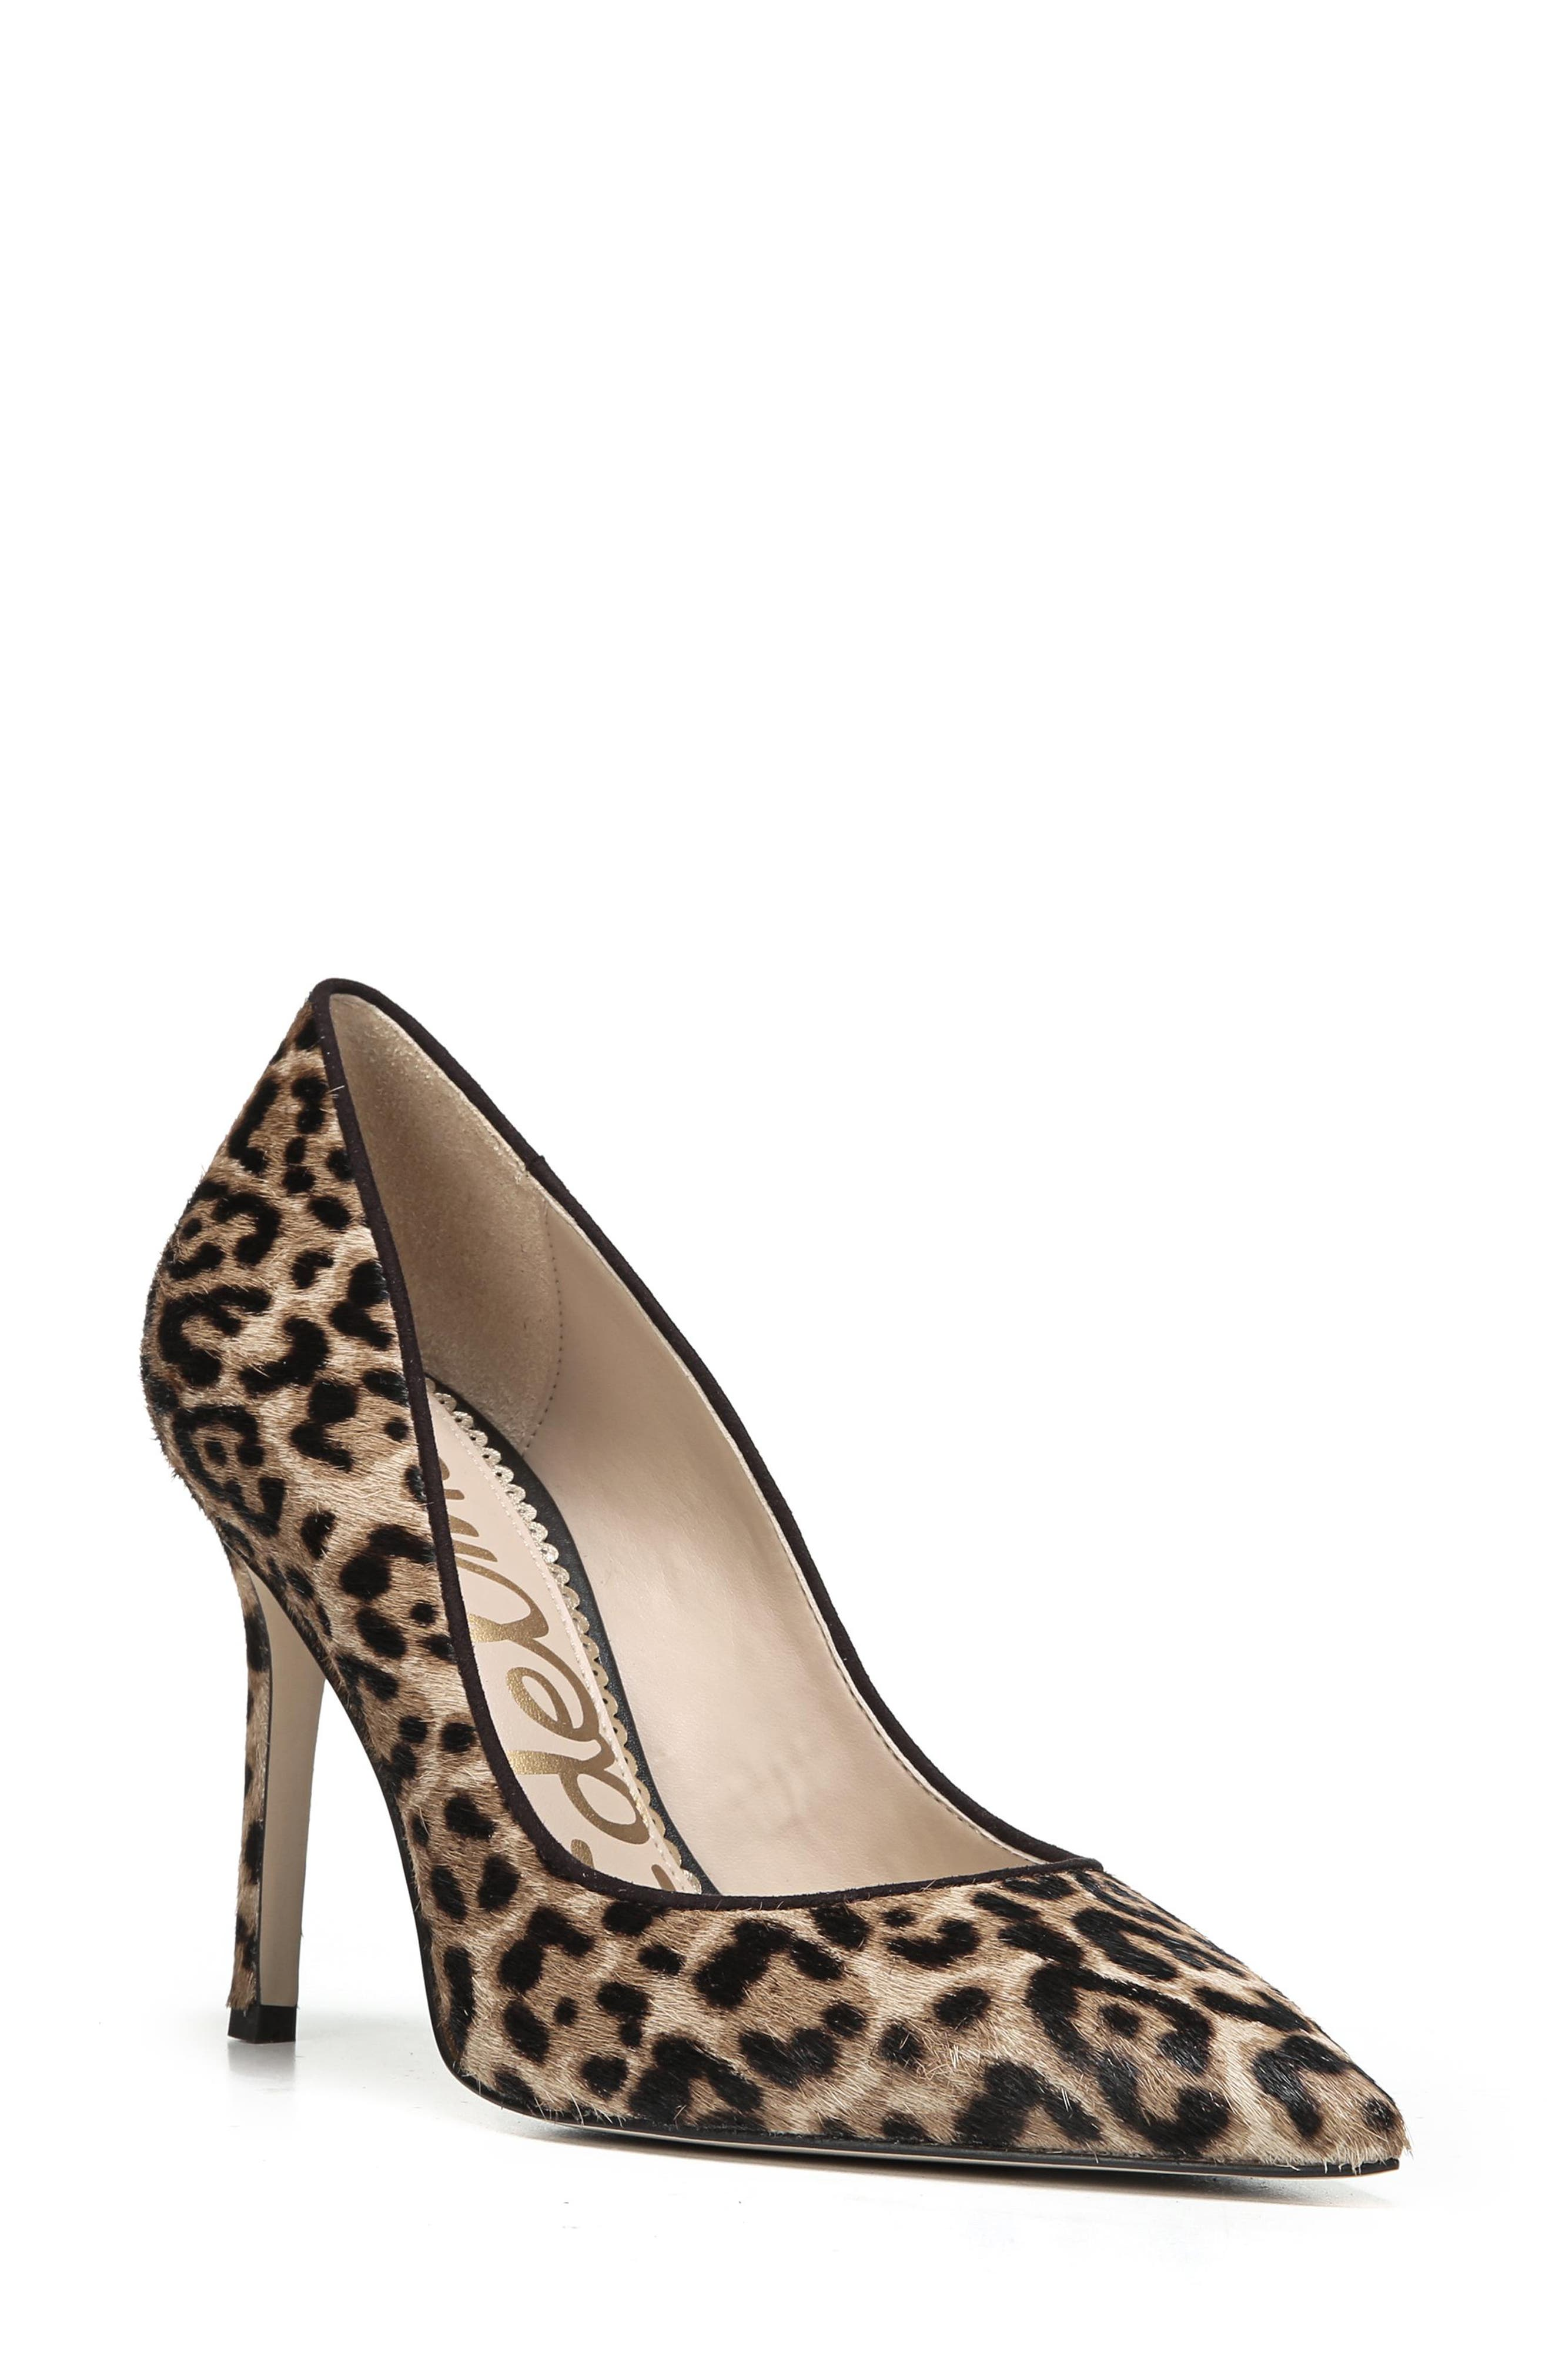 SAM EDELMAN, Hazel Pointy Toe Pump, Main thumbnail 1, color, LEOPARD CALF HAIR